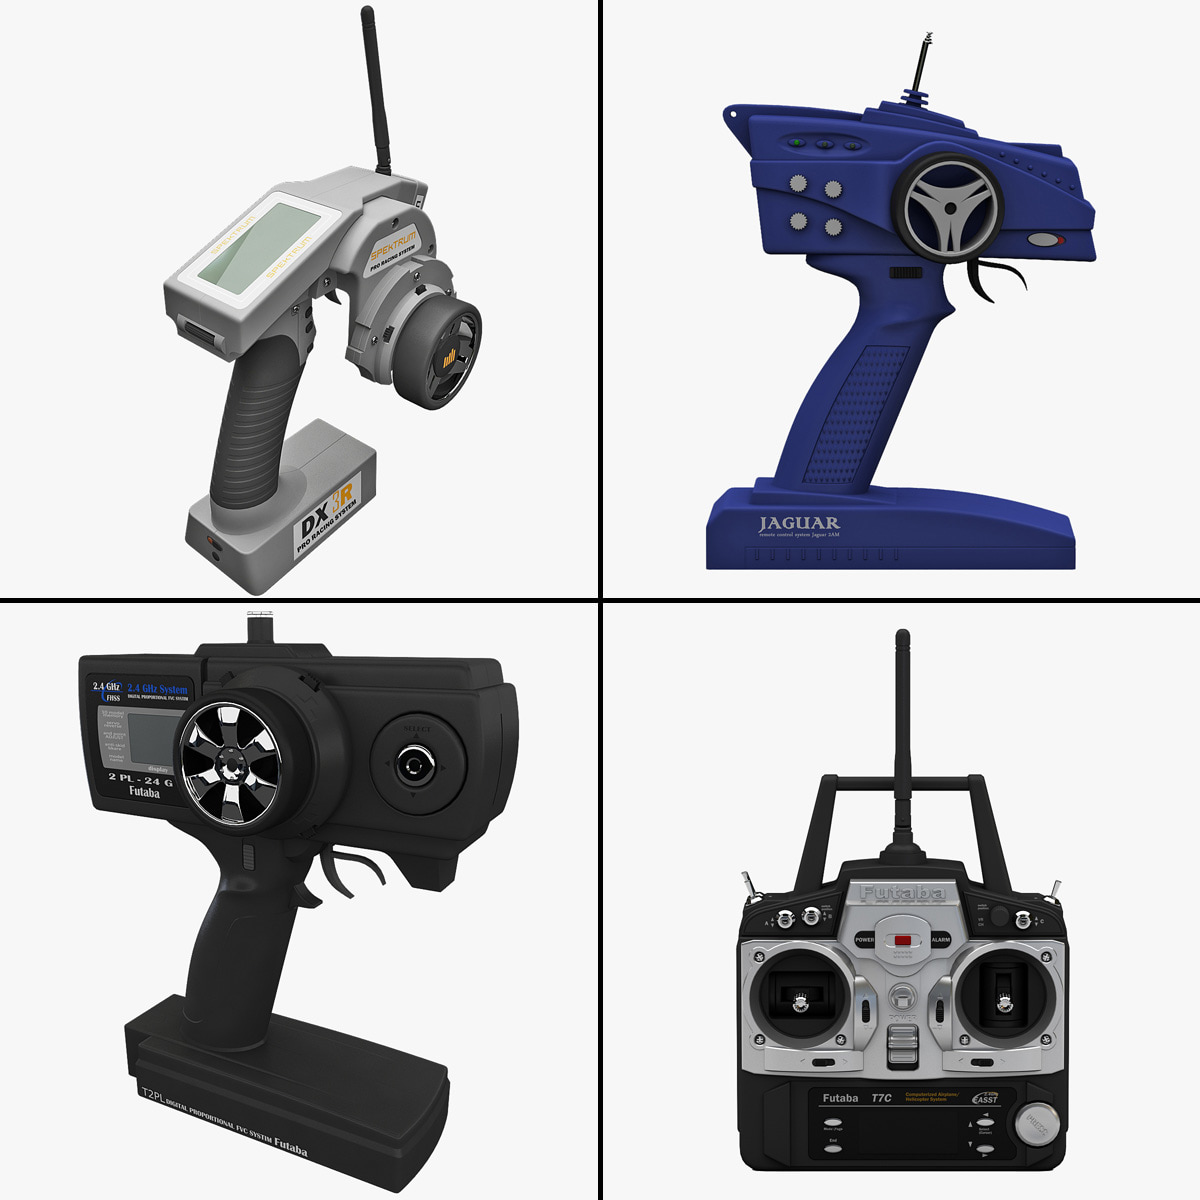 Radio_Control_Transmitters_Collection_000.jpg